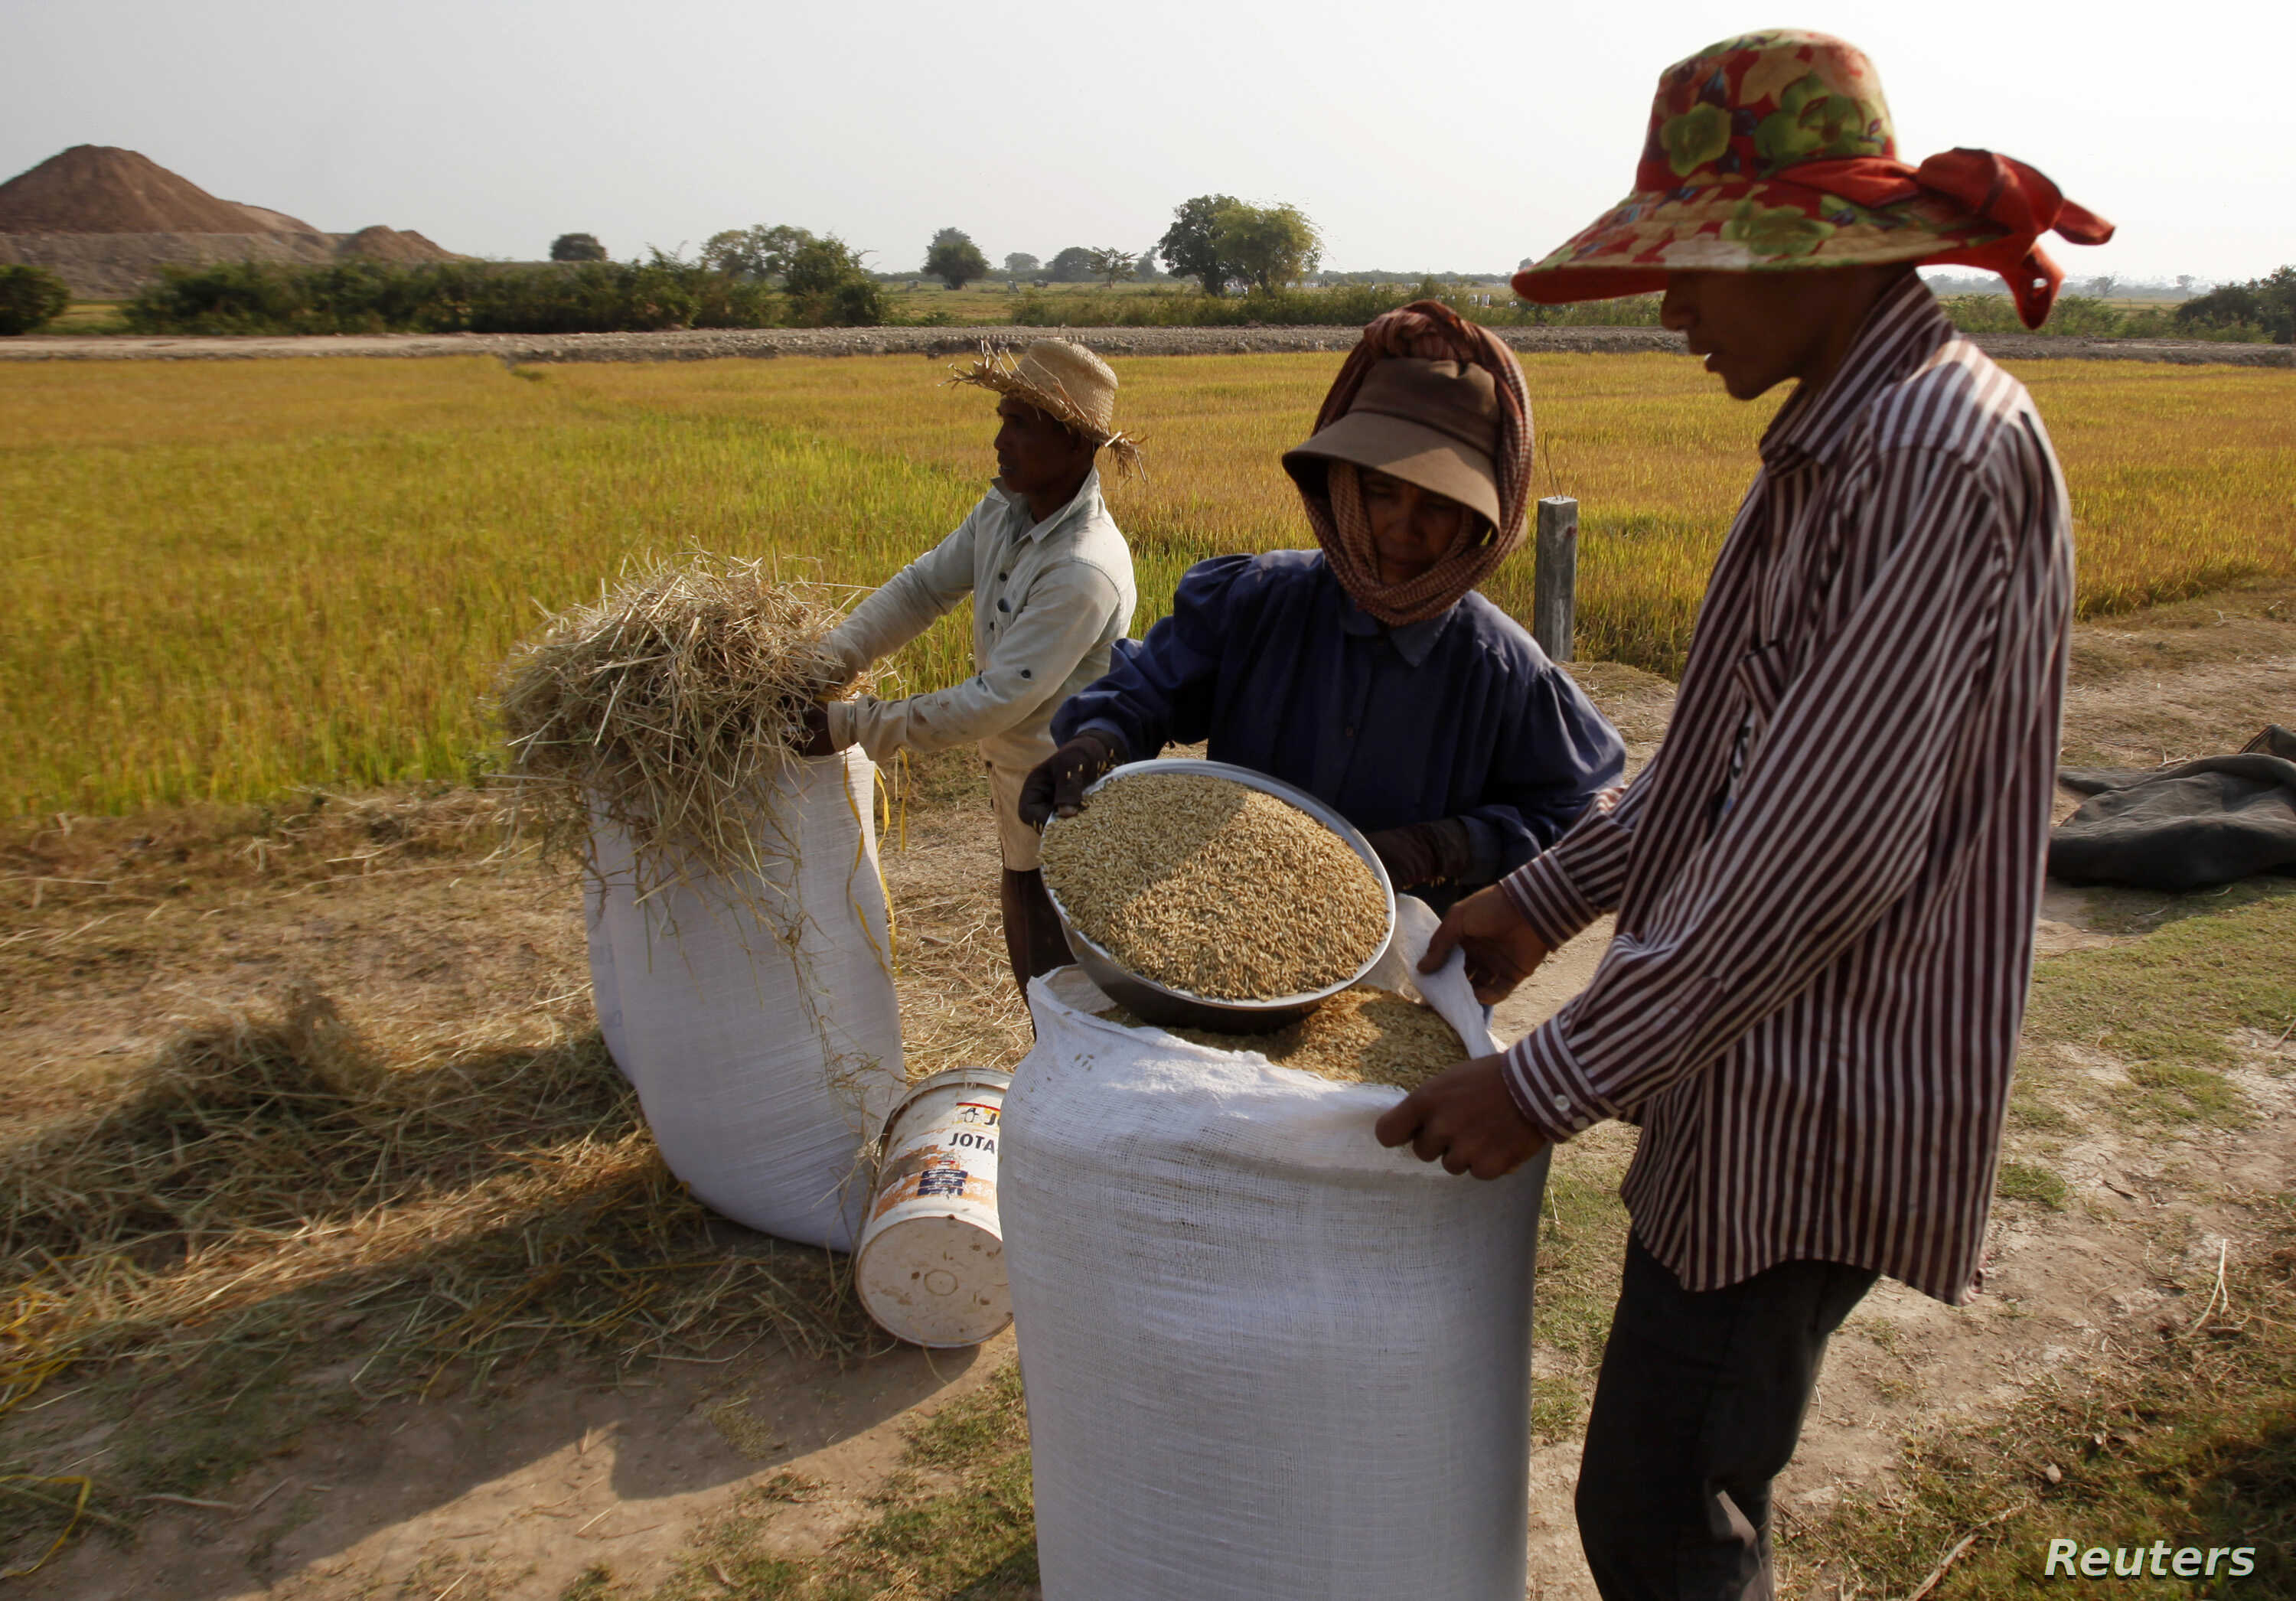 Farmers collect rice in a rice paddy field in Kandal province, Cambodia, Feb. 11, 2015.